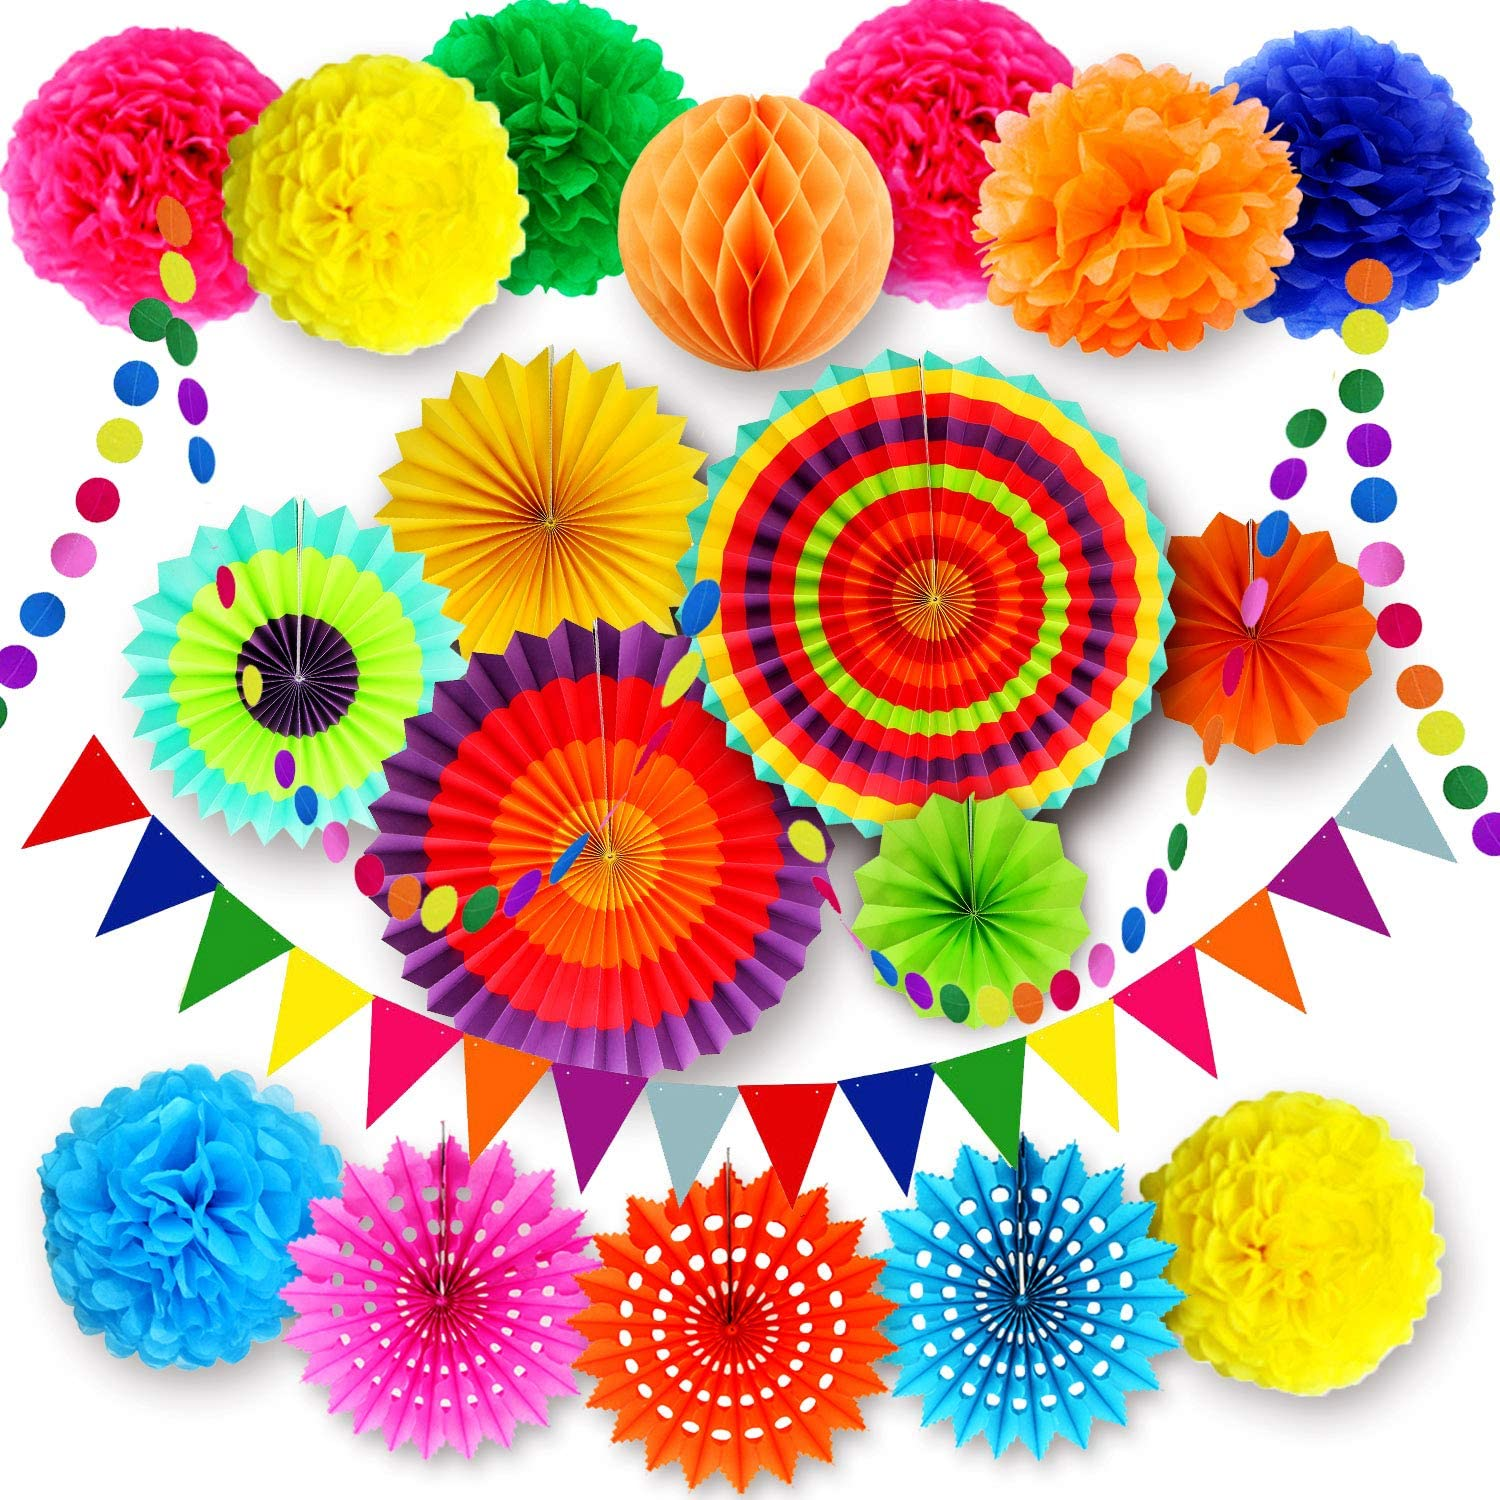 Fiesta Party Decorations Supplies, Multi-Color Hanging Paper Fans, Pom Poms Flowers, Garlands String Polka Dot, Triangle Bunting Flags for Birthday Parties, Wedding Decor, Fiesta or Mexican Party